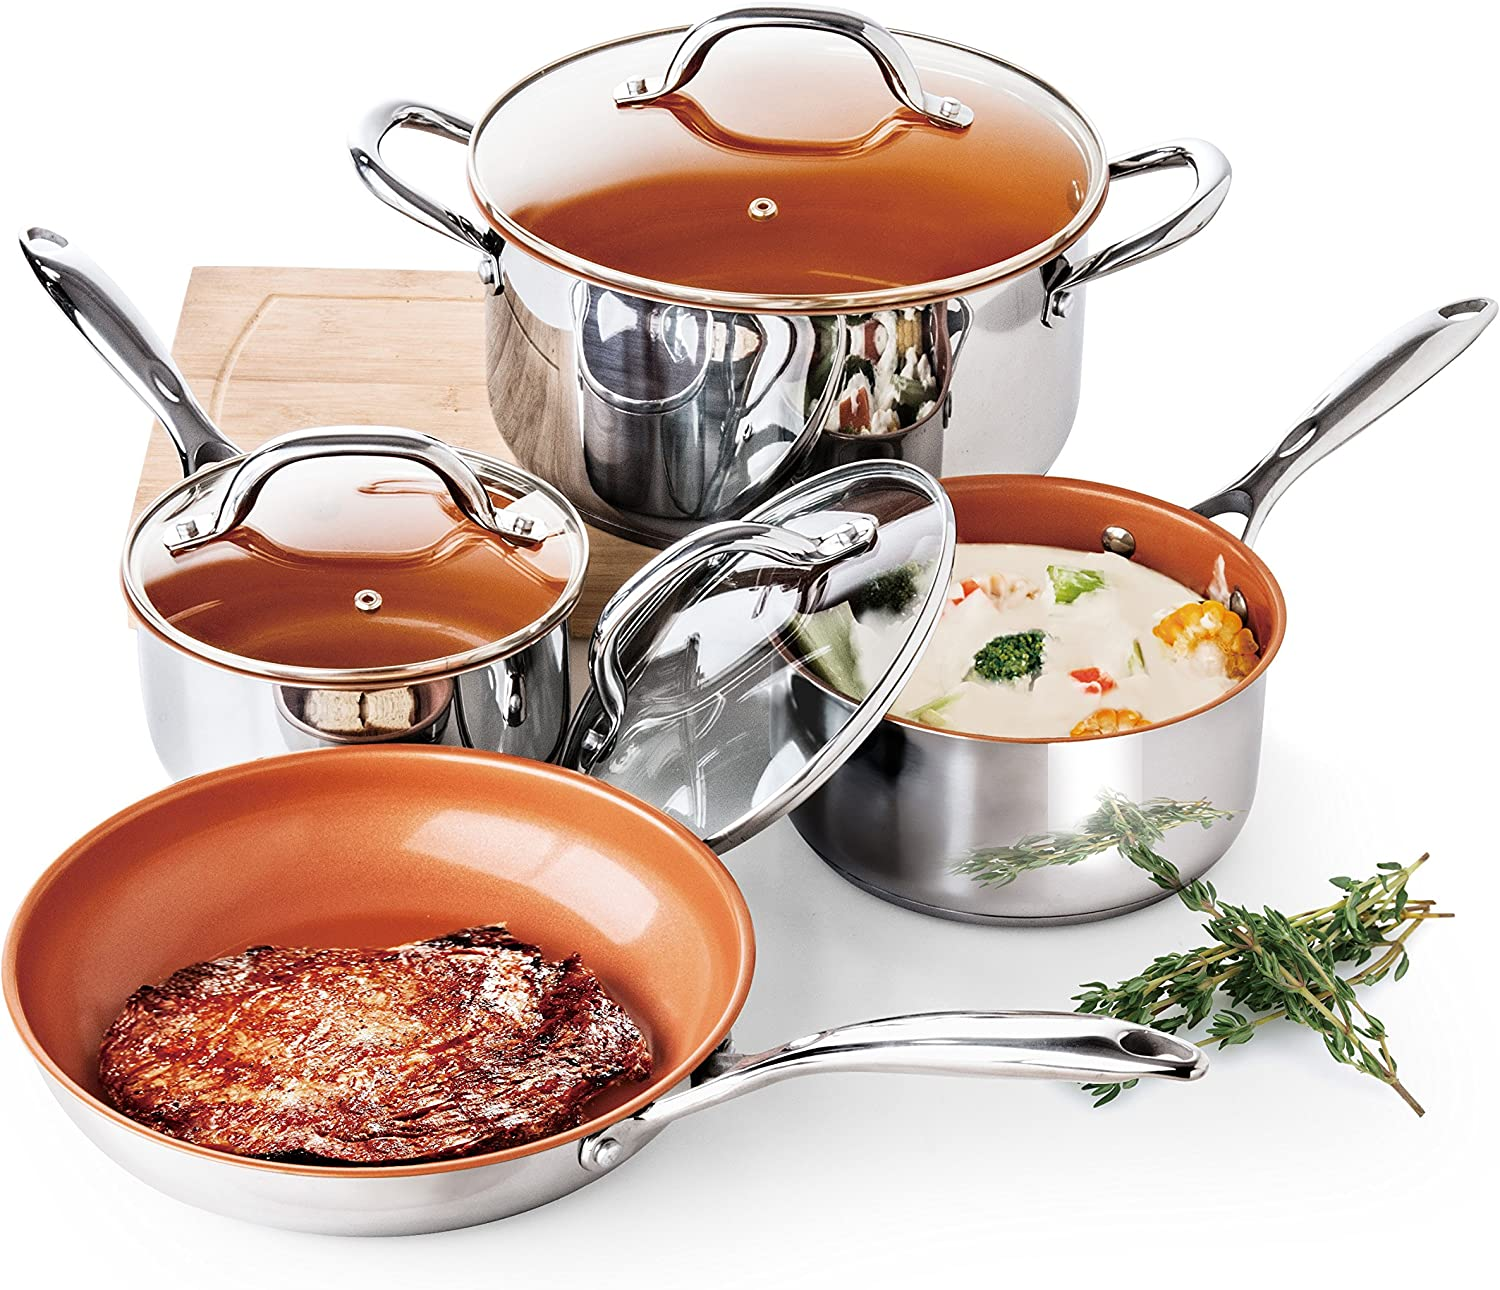 Redwood Copper 7 Piece Stainless Steel Cookware Set With Ceramic-Titanium Non-Stick, 1